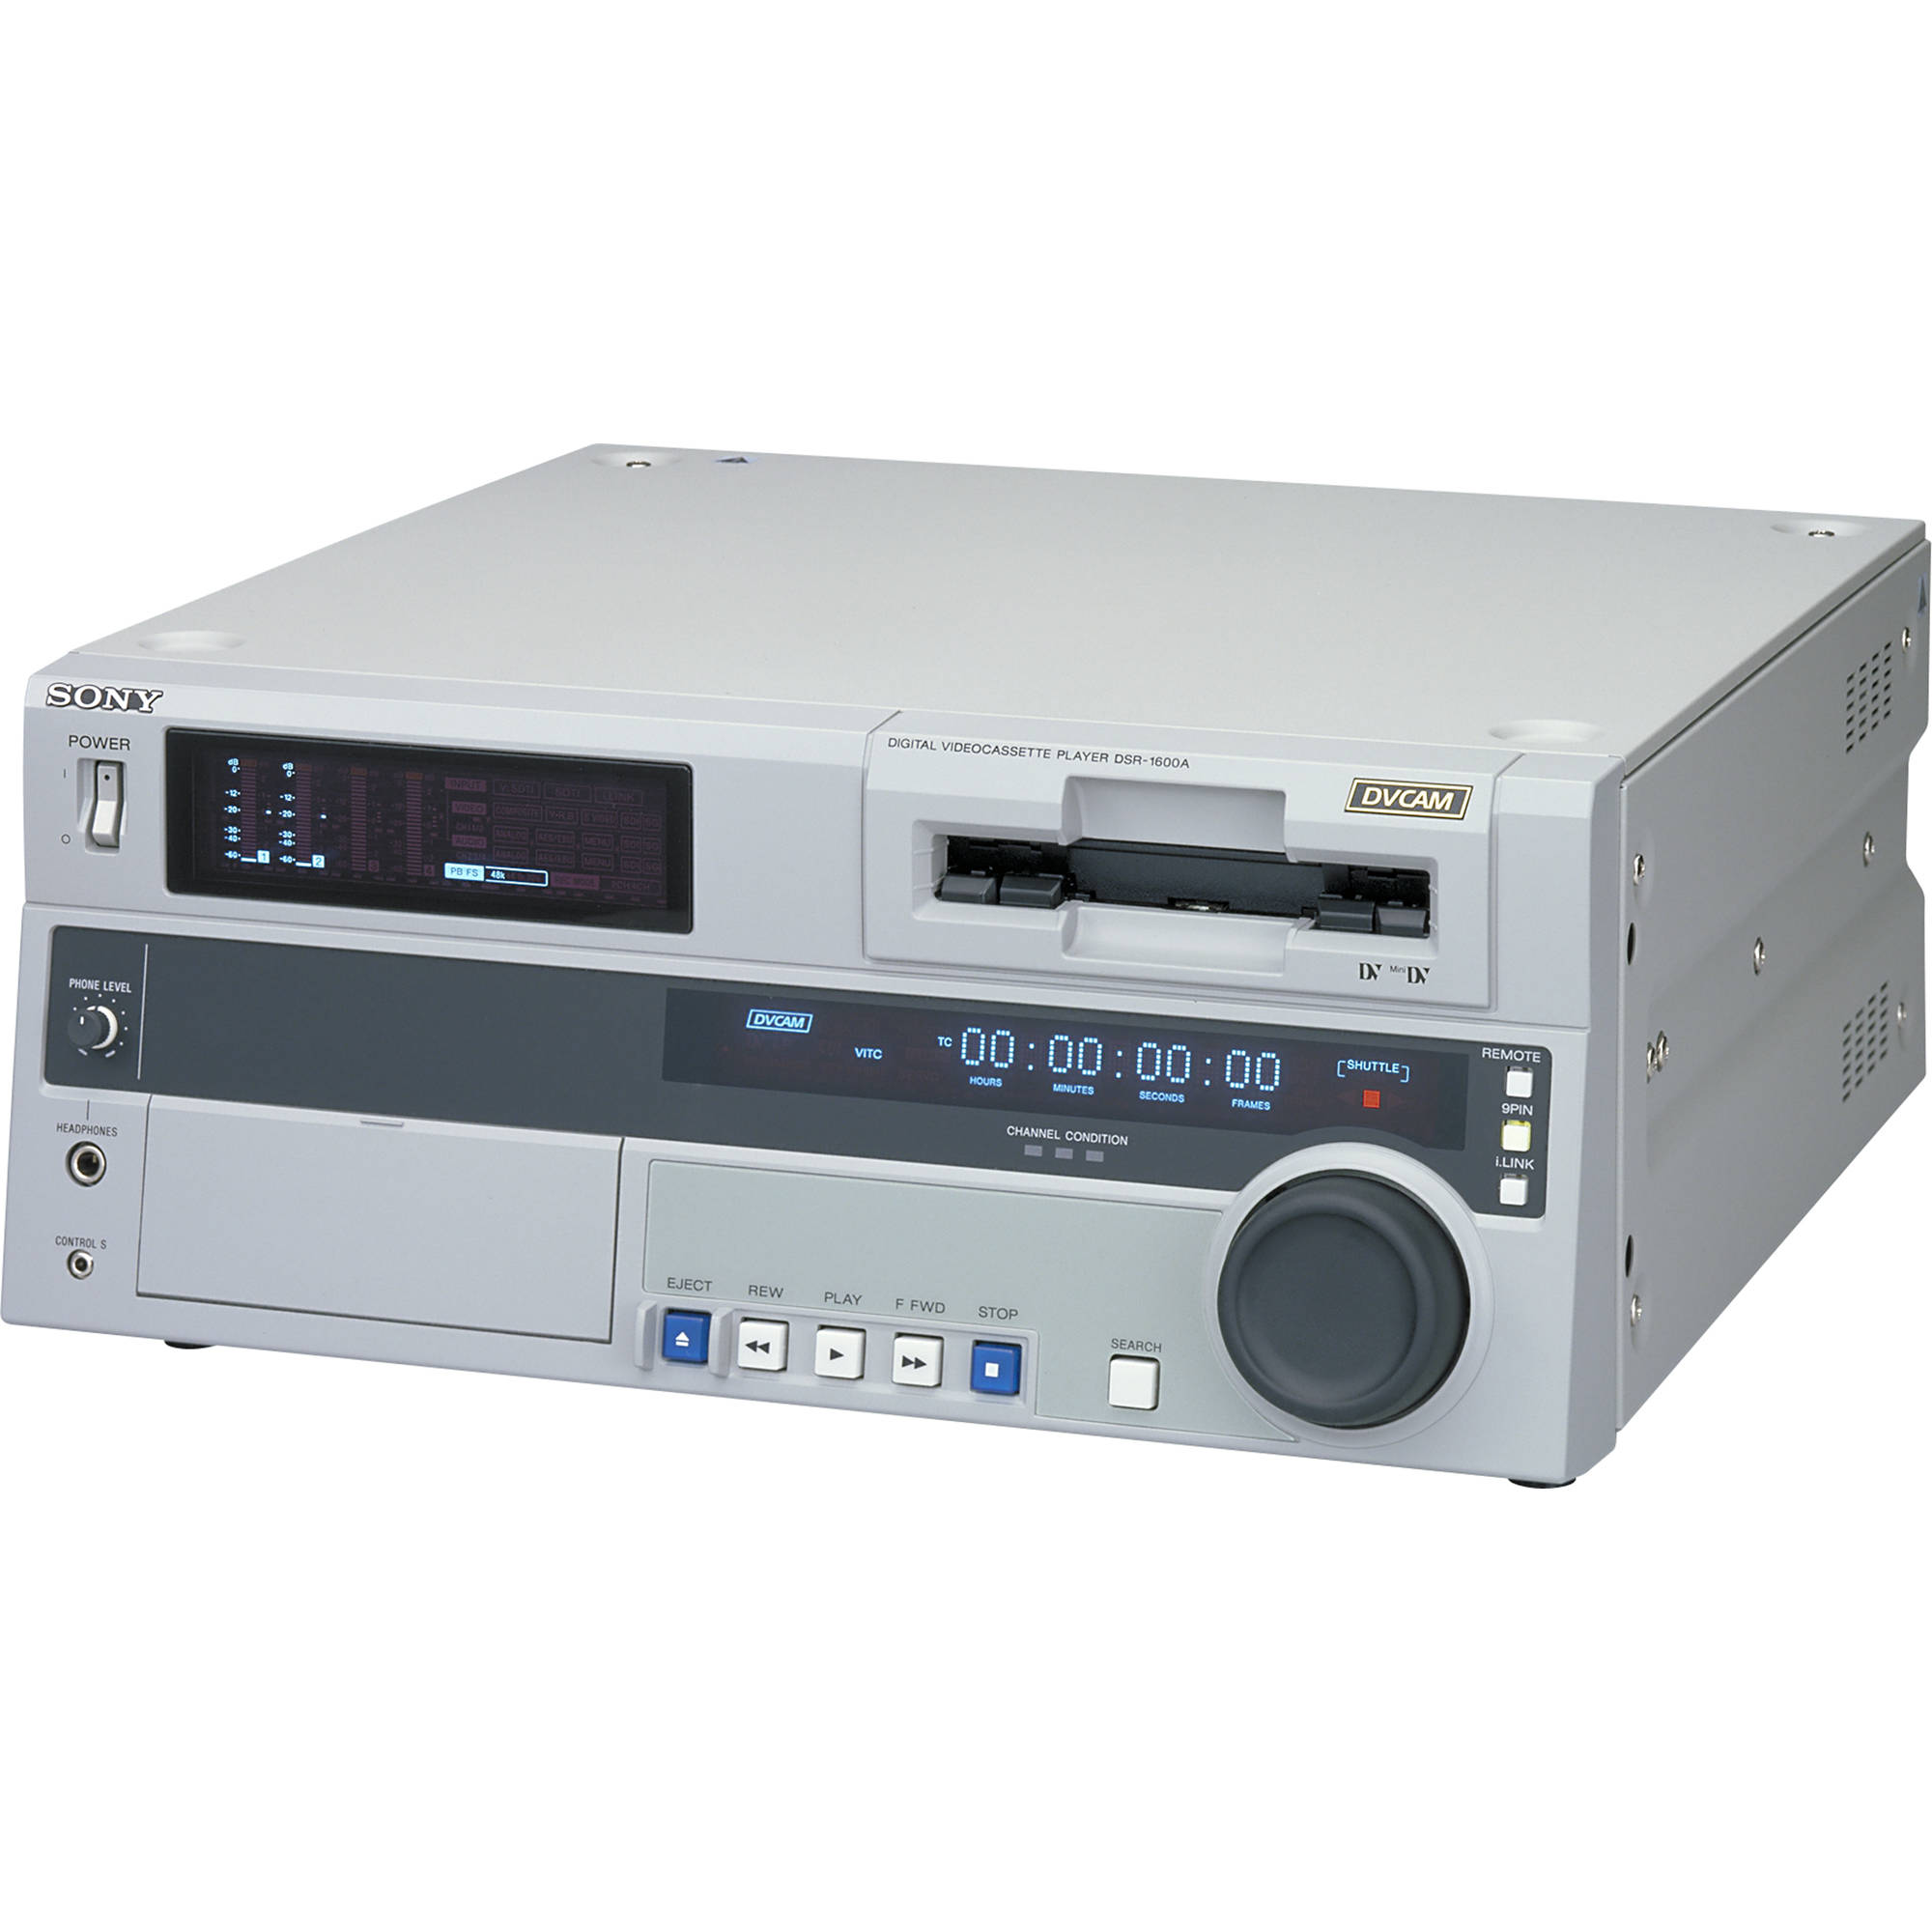 Repair of Sony DSR-1600A